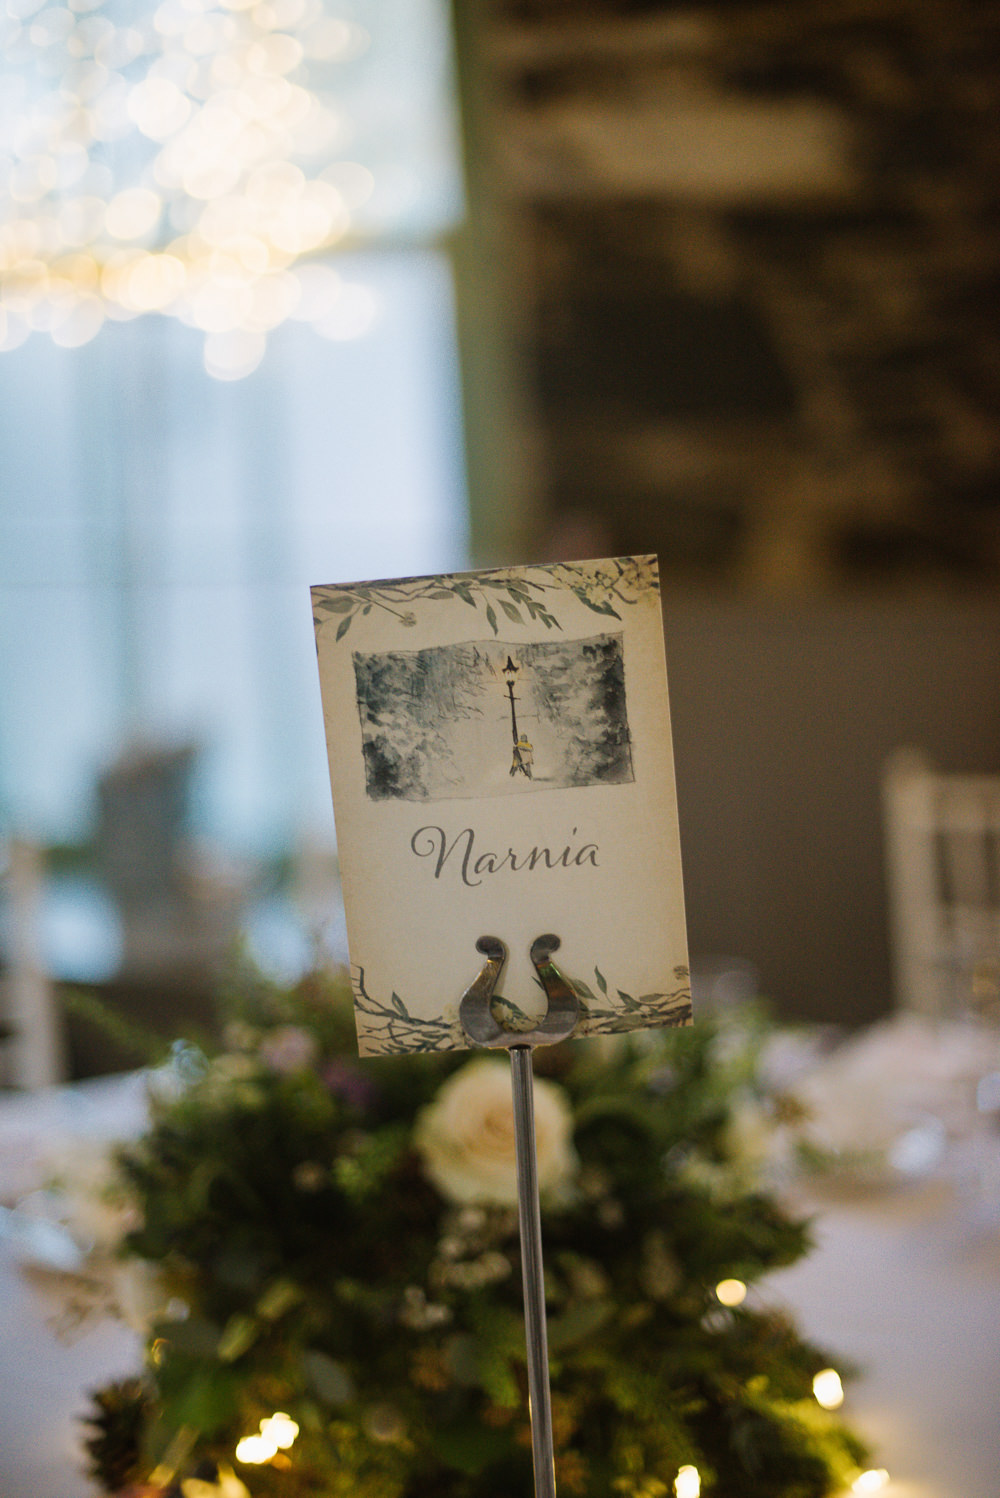 Table Name Narnia Watercolour Drawing Orange Tree House Wedding Winter You Them Us Photography